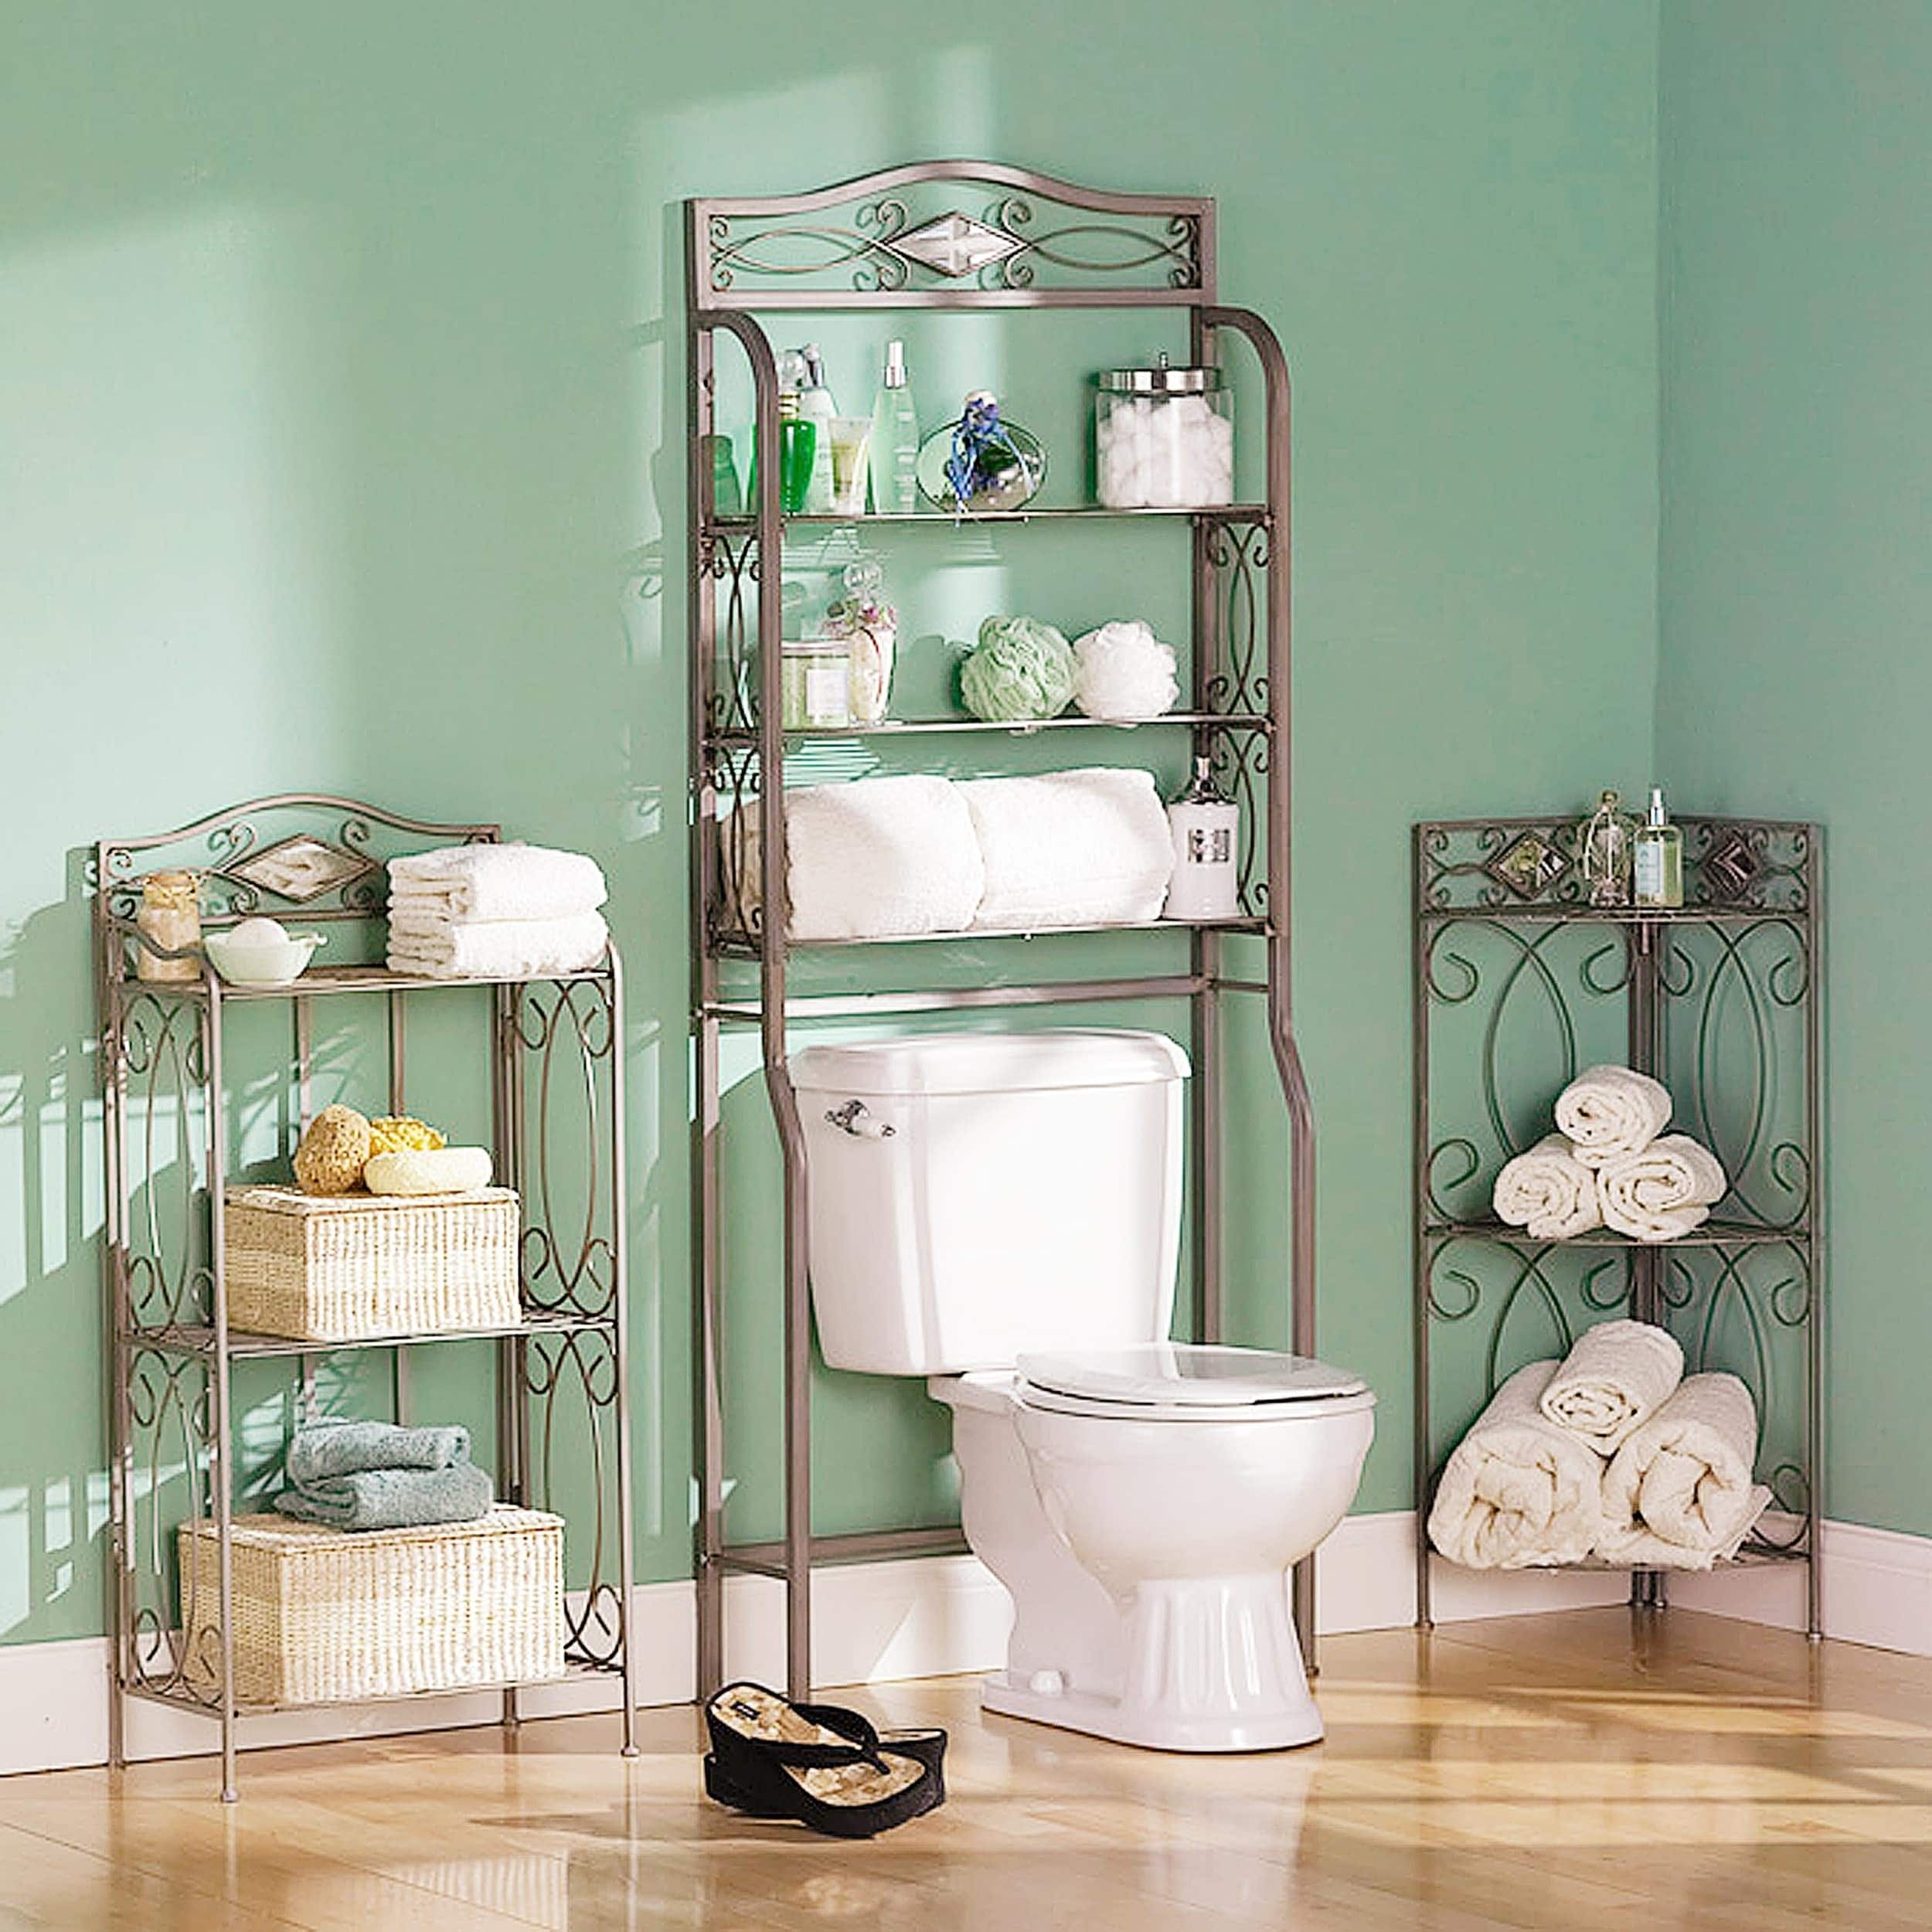 Shop Reflections 3-tier Metal Bathroom Storage Rack - On Sale - Free ...